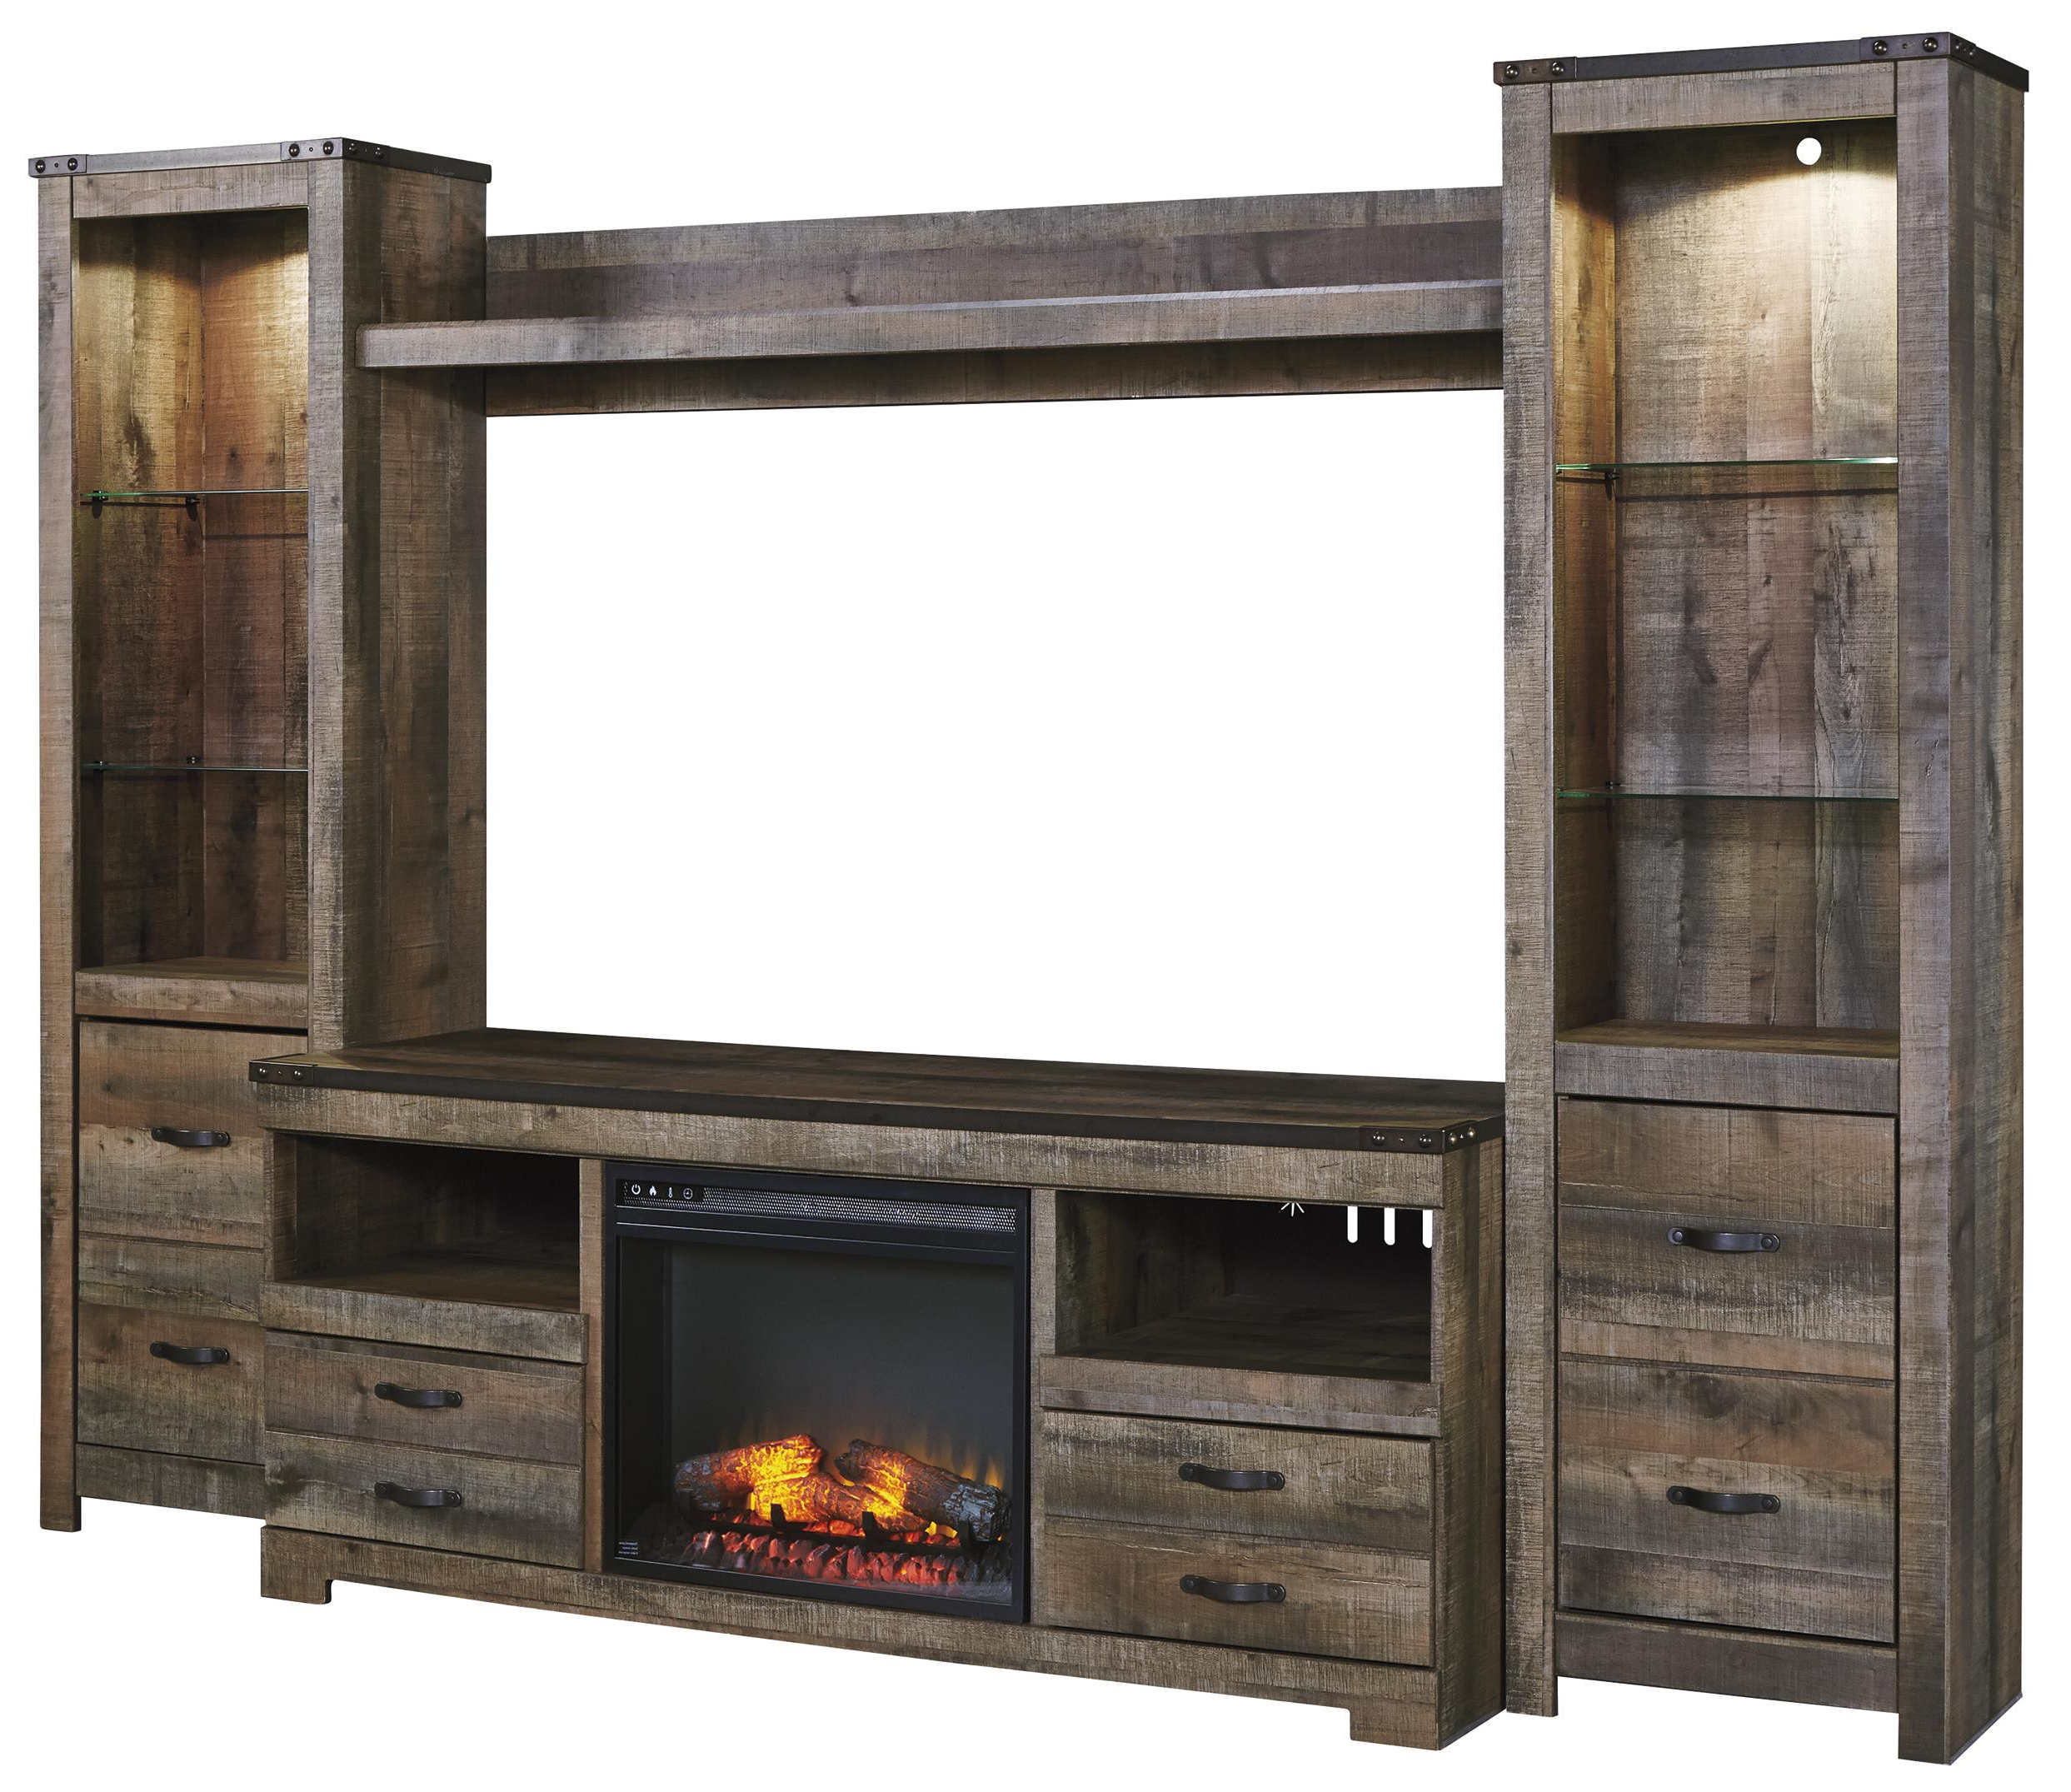 Latest Tv Stands And Bookshelf With Urban Rustic Rustic Large Tv Stand W/ Fireplace Insert, 2 Tall Piers (Gallery 17 of 20)